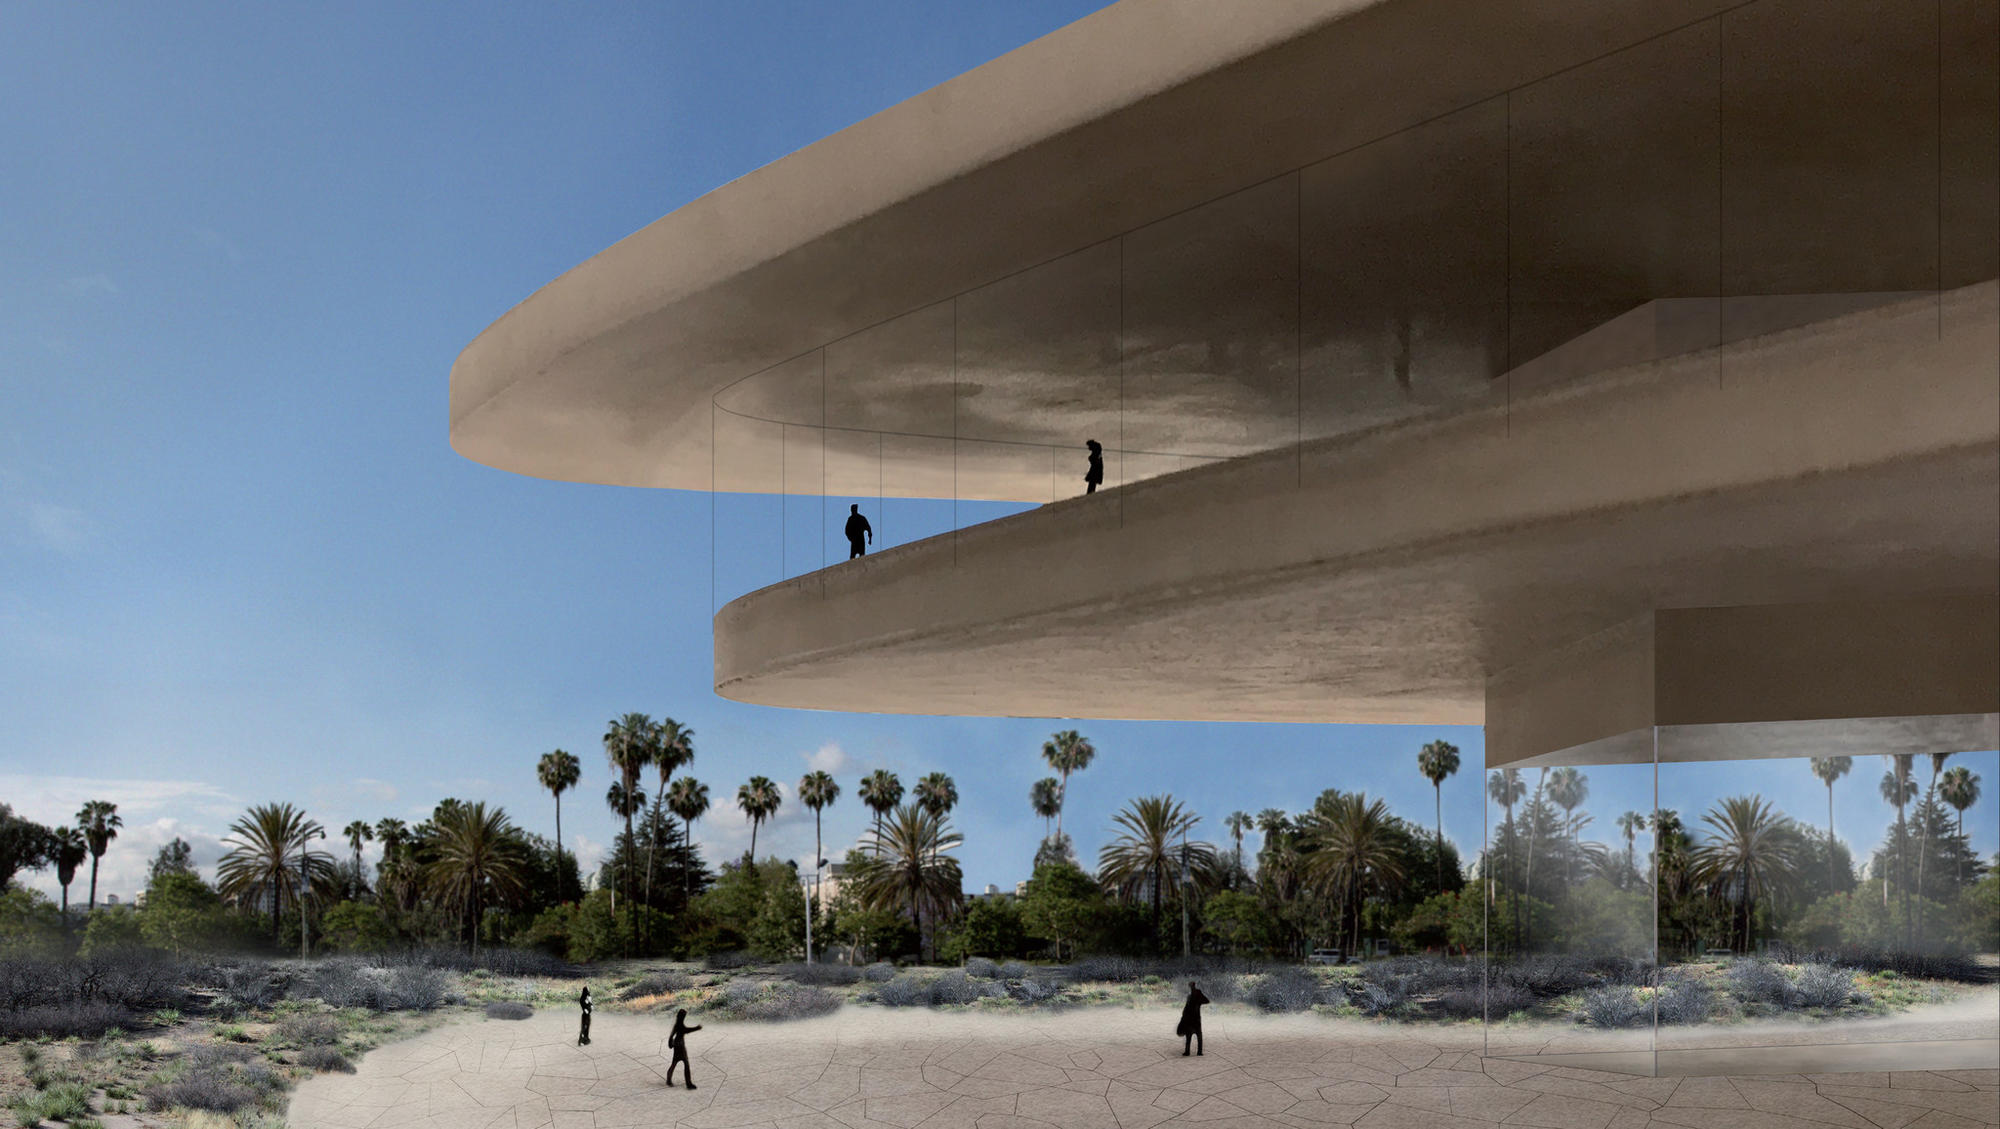 The new LACMA design, as it overlooks nearby park space.